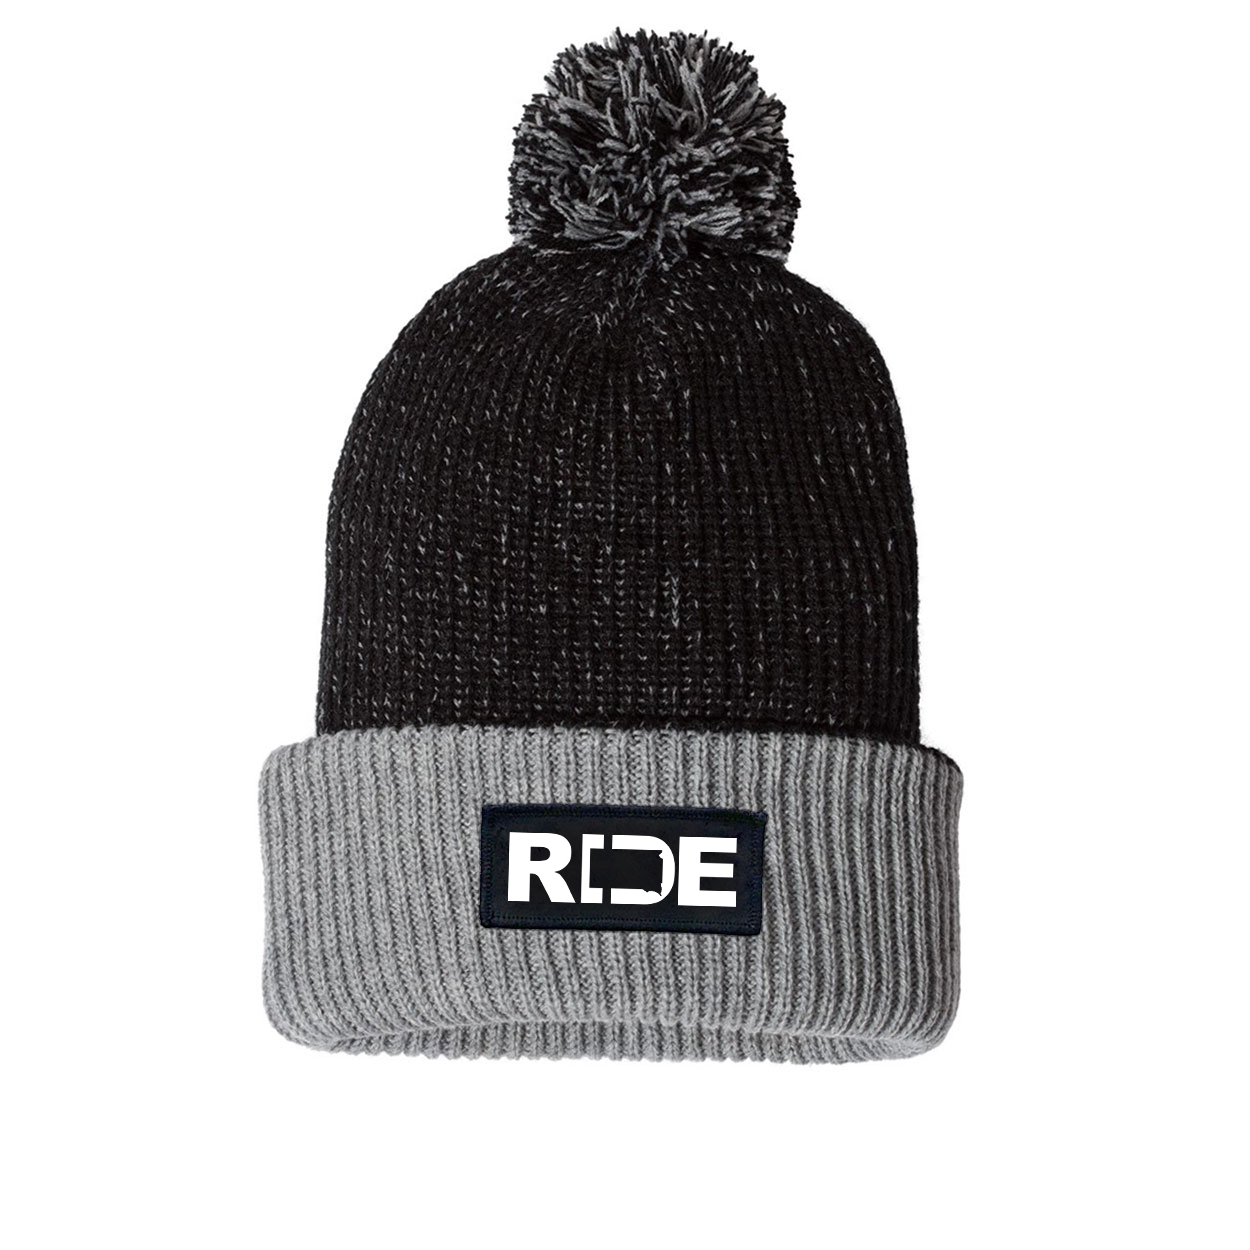 Ride South Dakota Night Out Woven Patch Roll Up Pom Knit Beanie Black/Gray (White Logo)